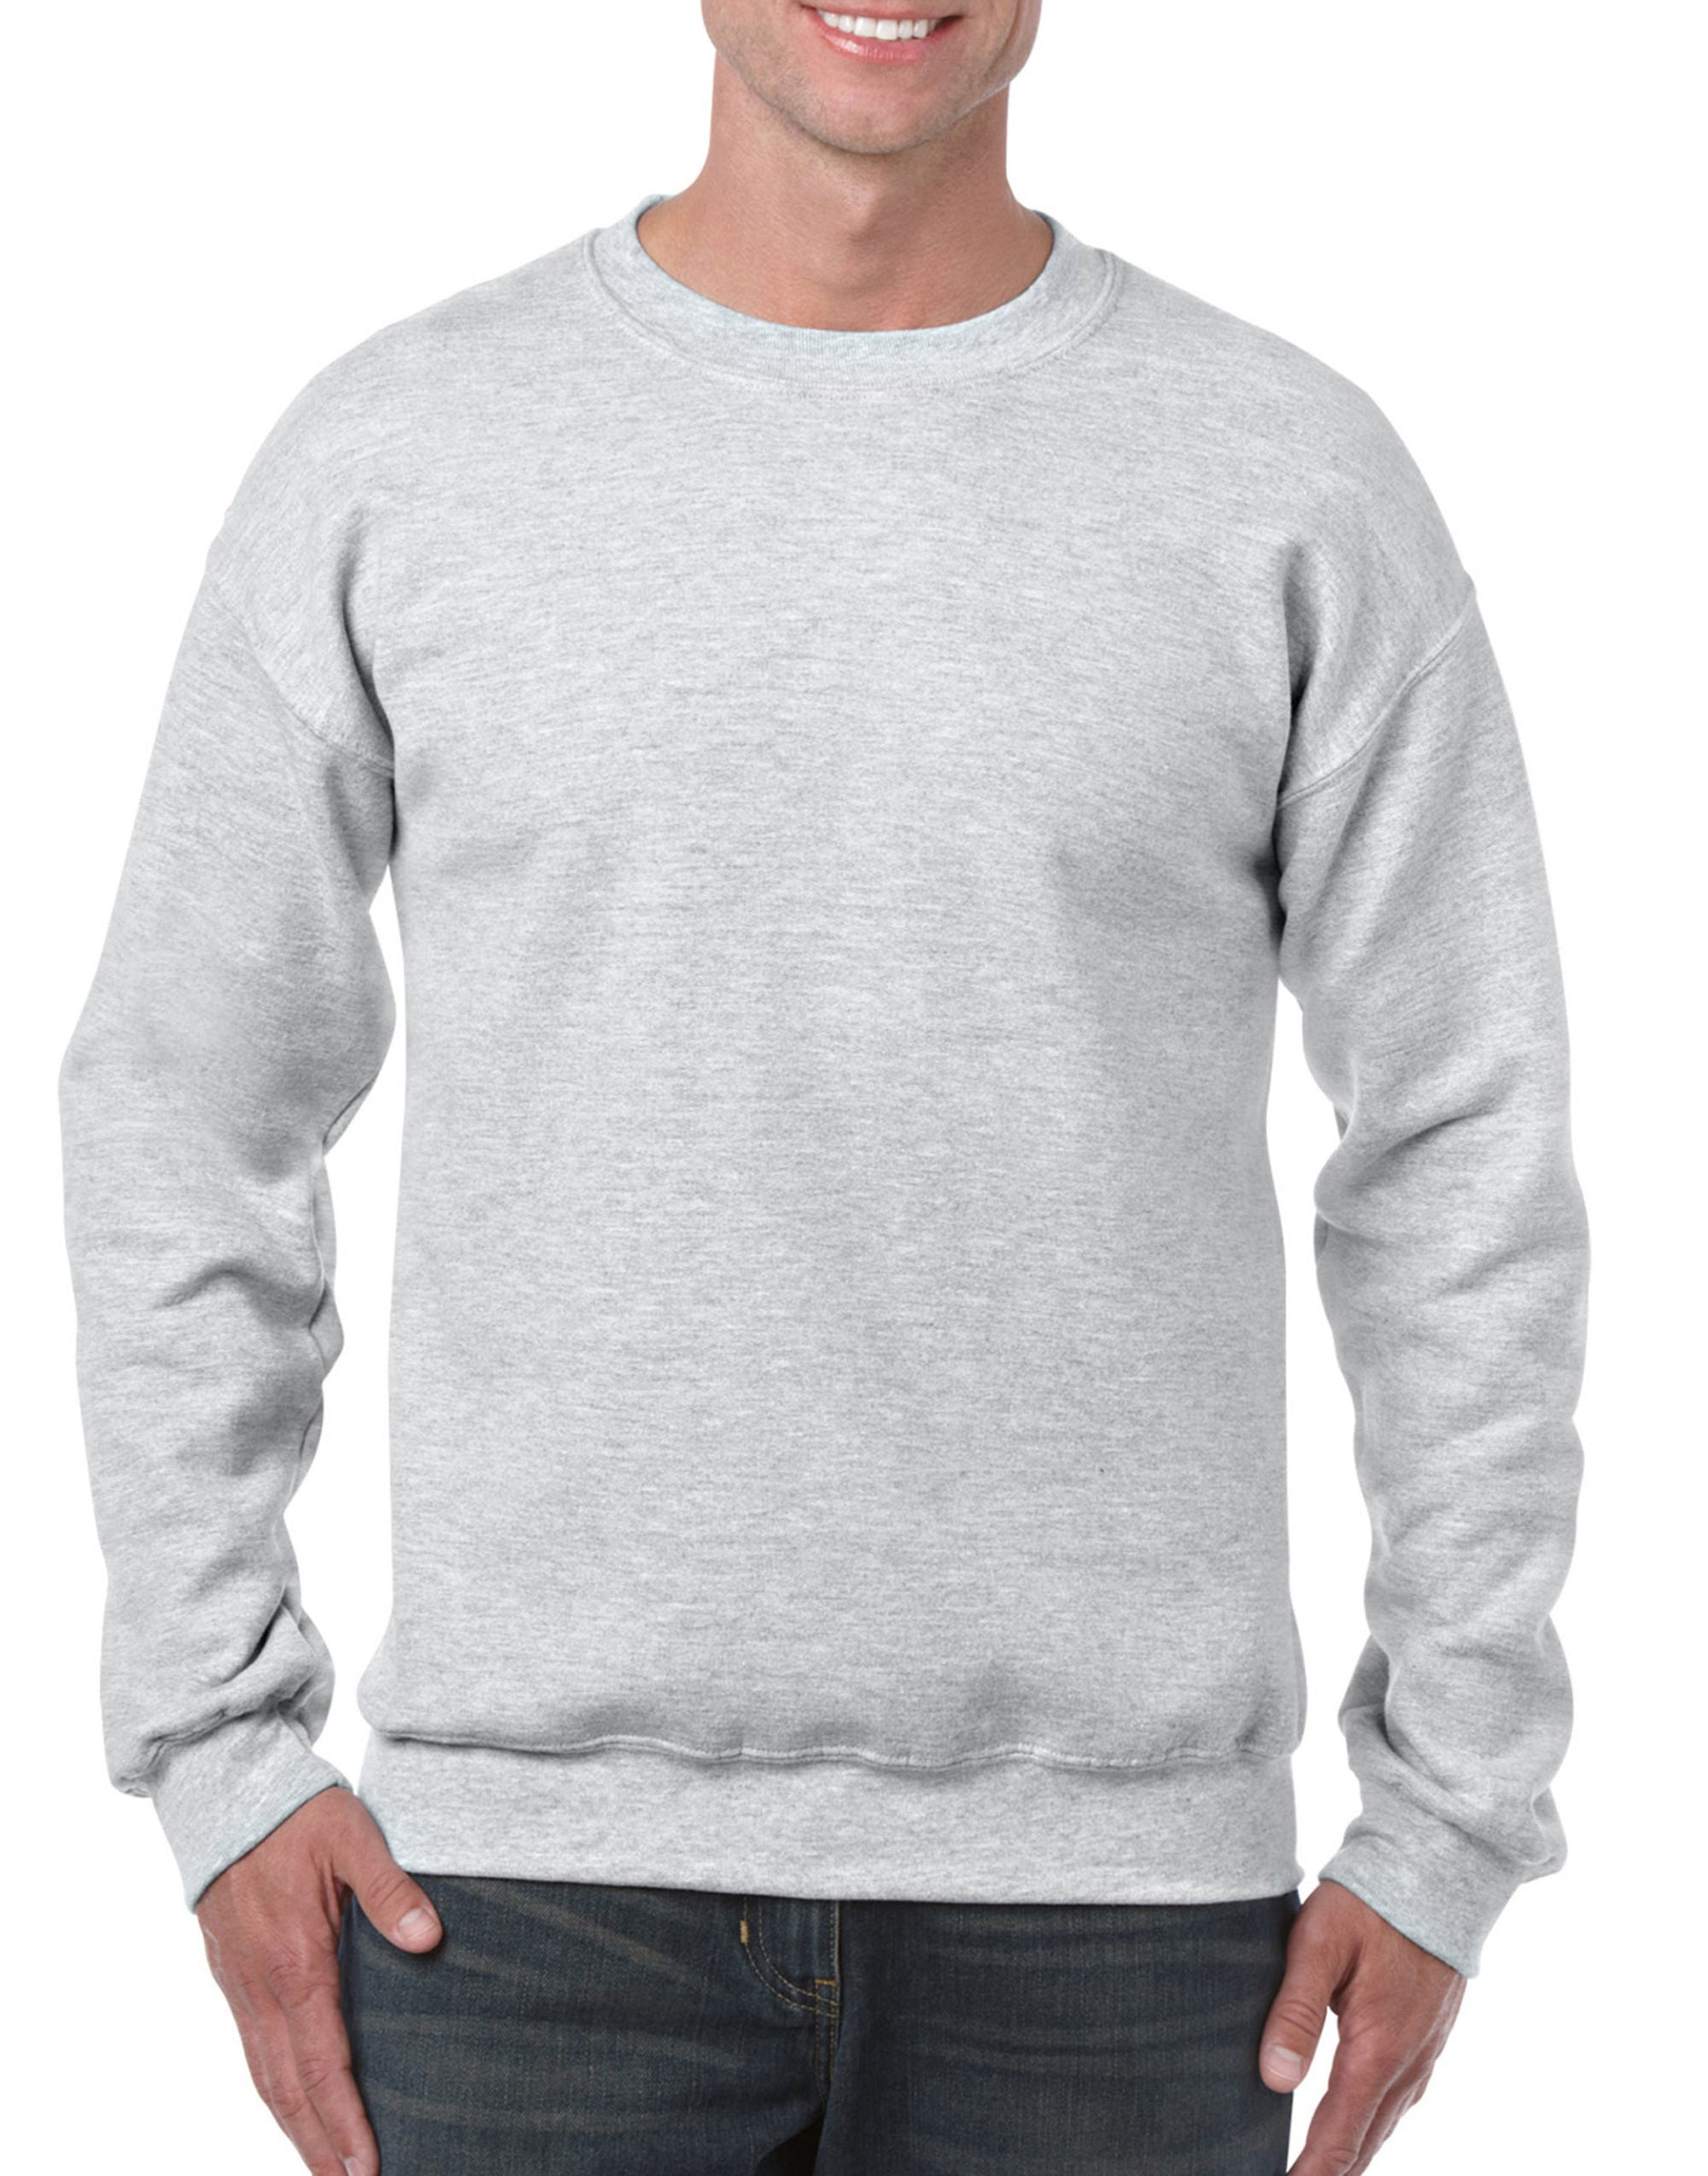 5 x Sweatshirts with Embroidered LOGO Front & Back